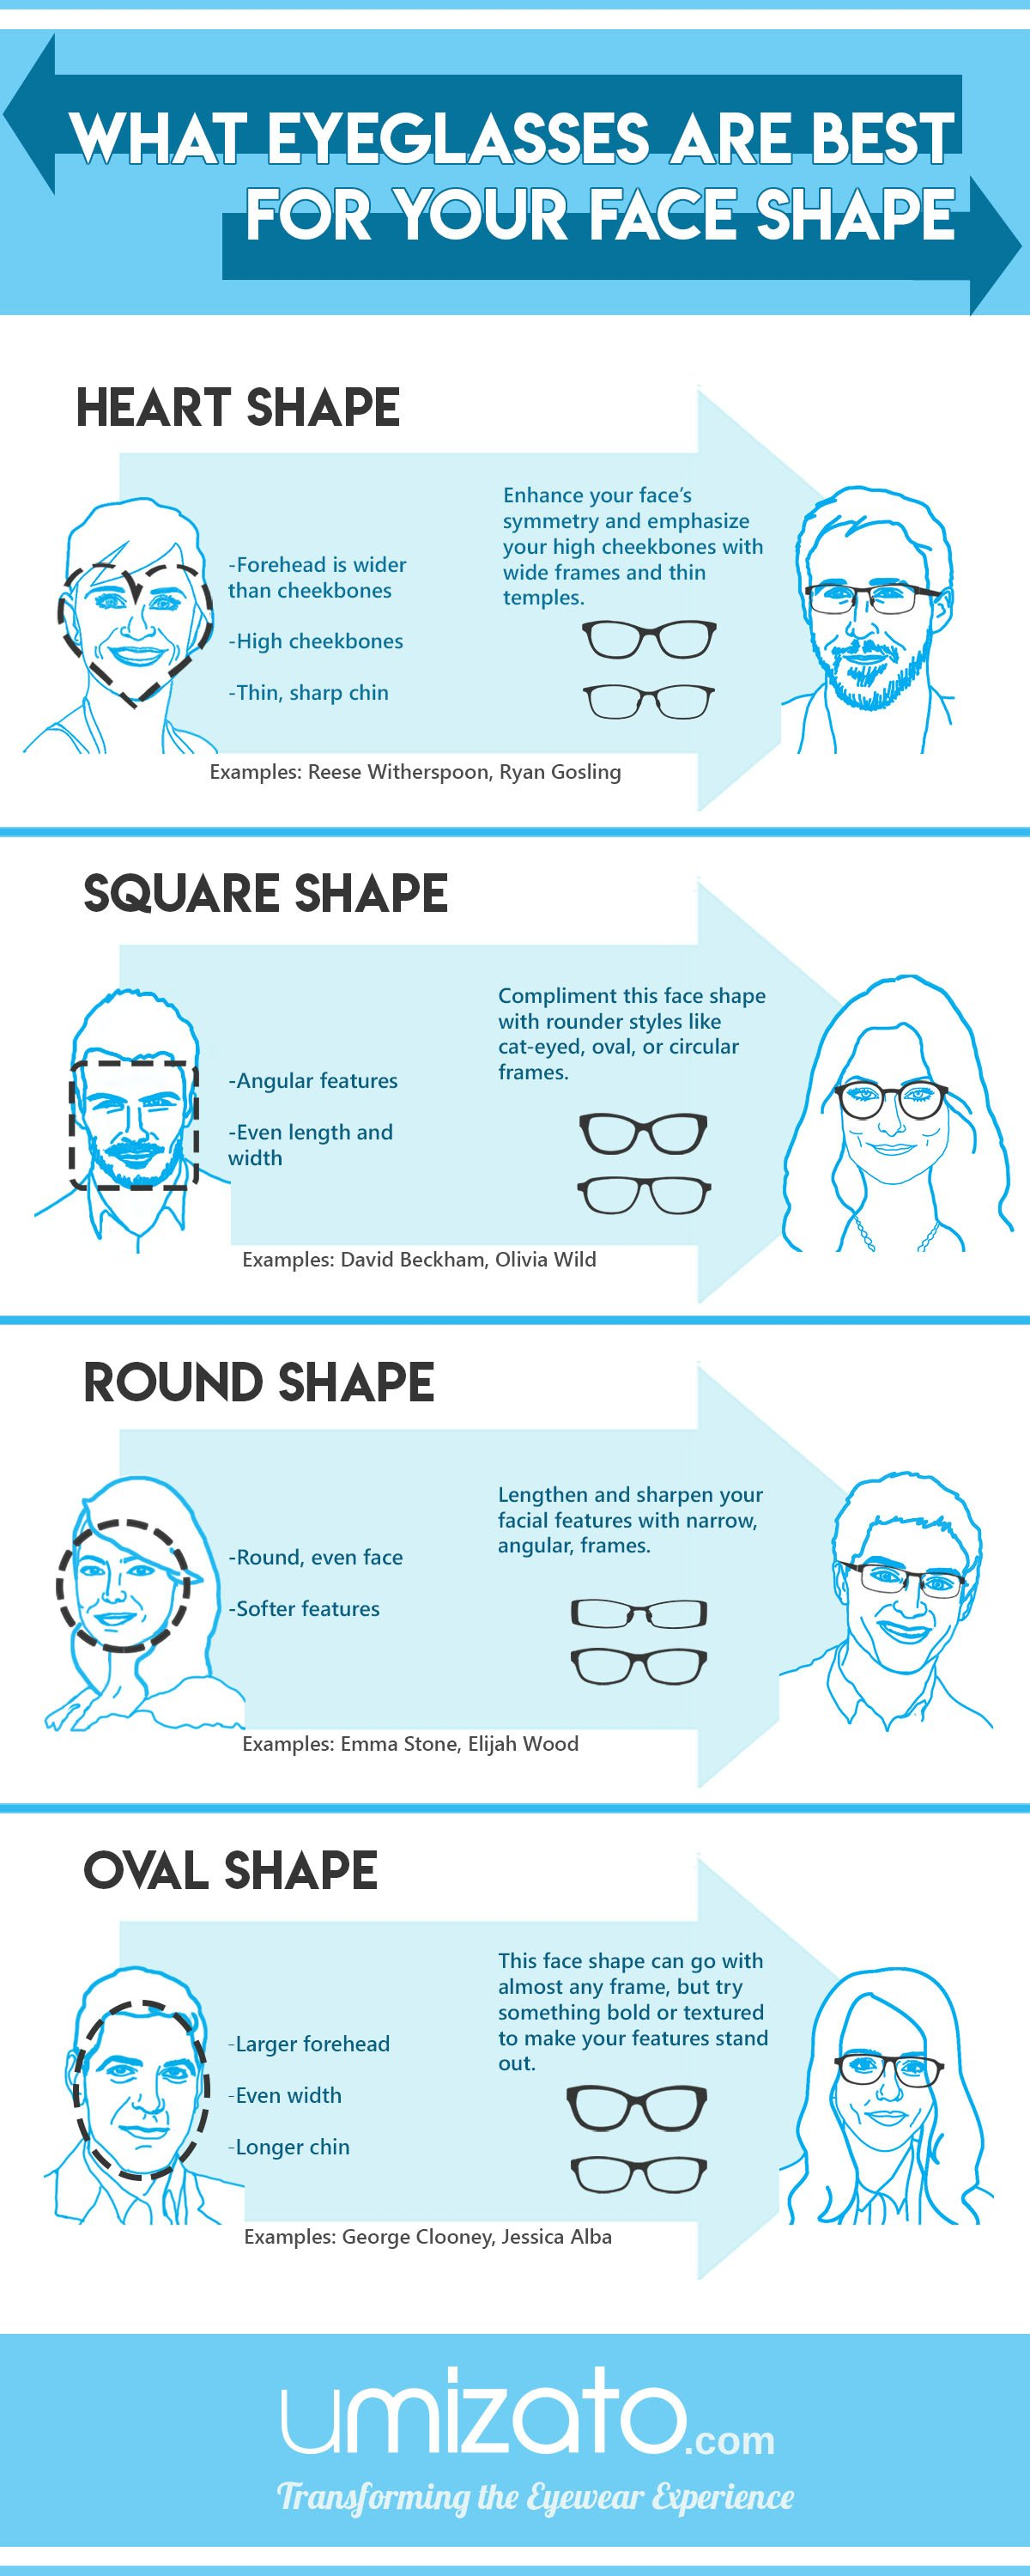 957fc08043 How to Find the Right Glasses For Your Face Shape  INFOGRAPHIC